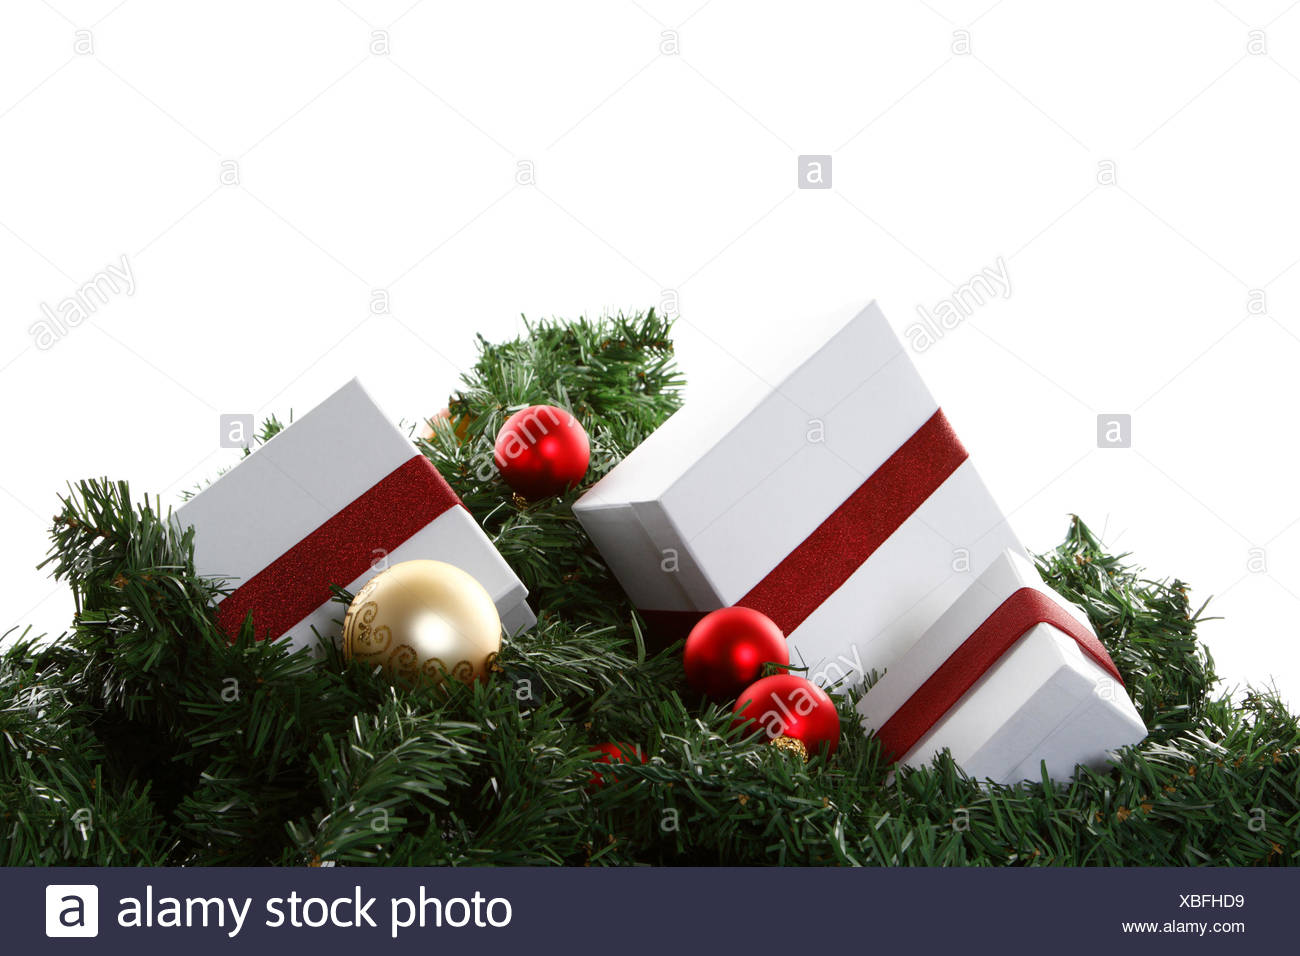 Christmas presents and baubles on artificial fir sprigs - Stock Image